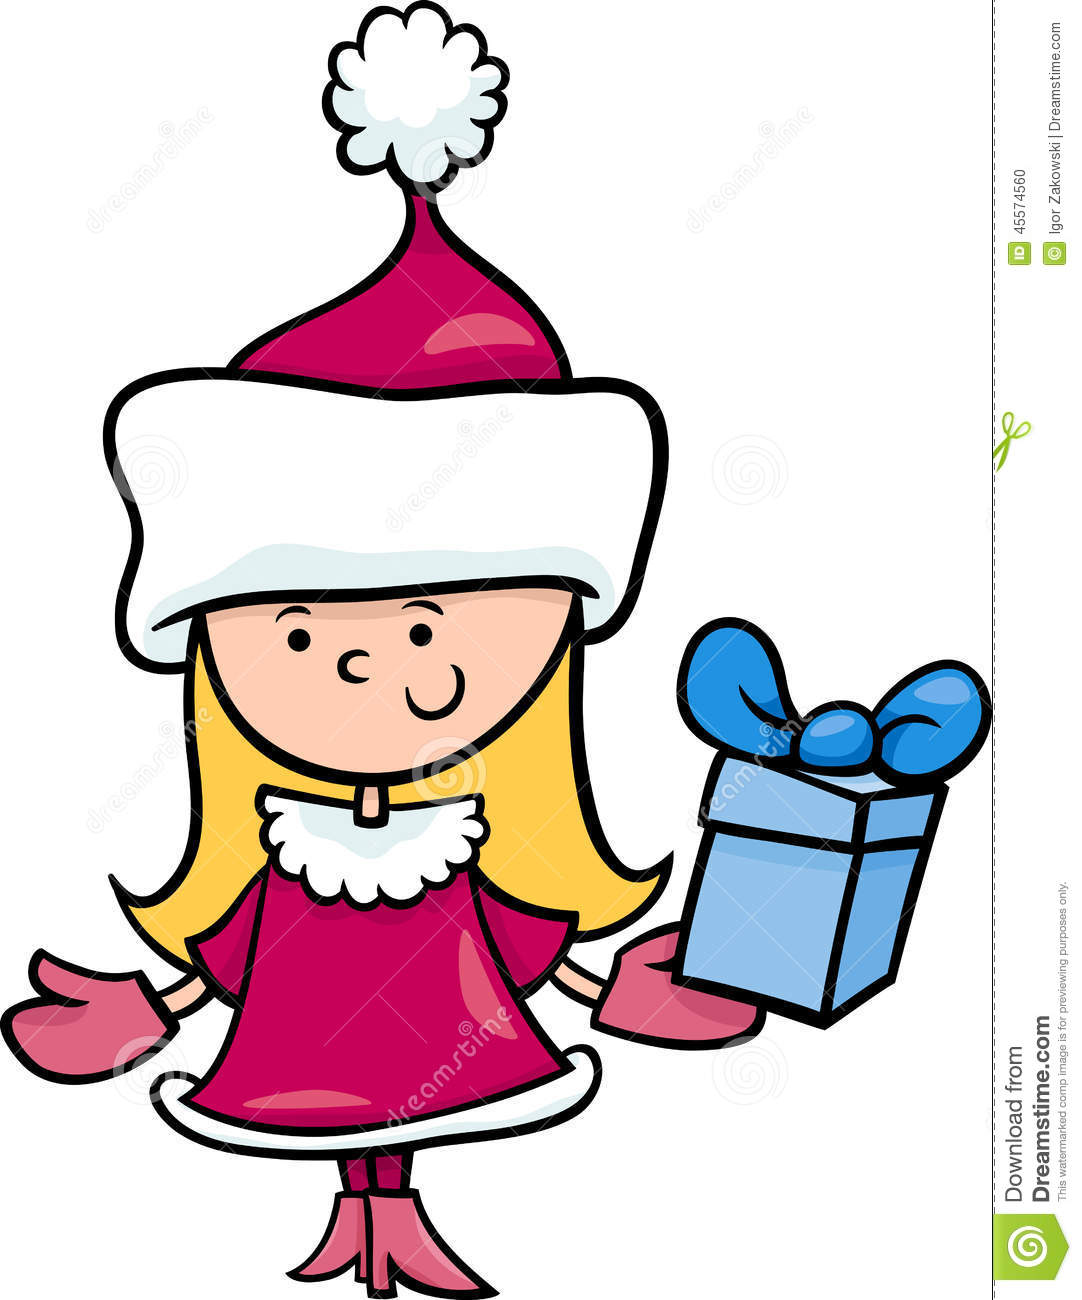 Santa claus girl cartoon illustration stock vector image